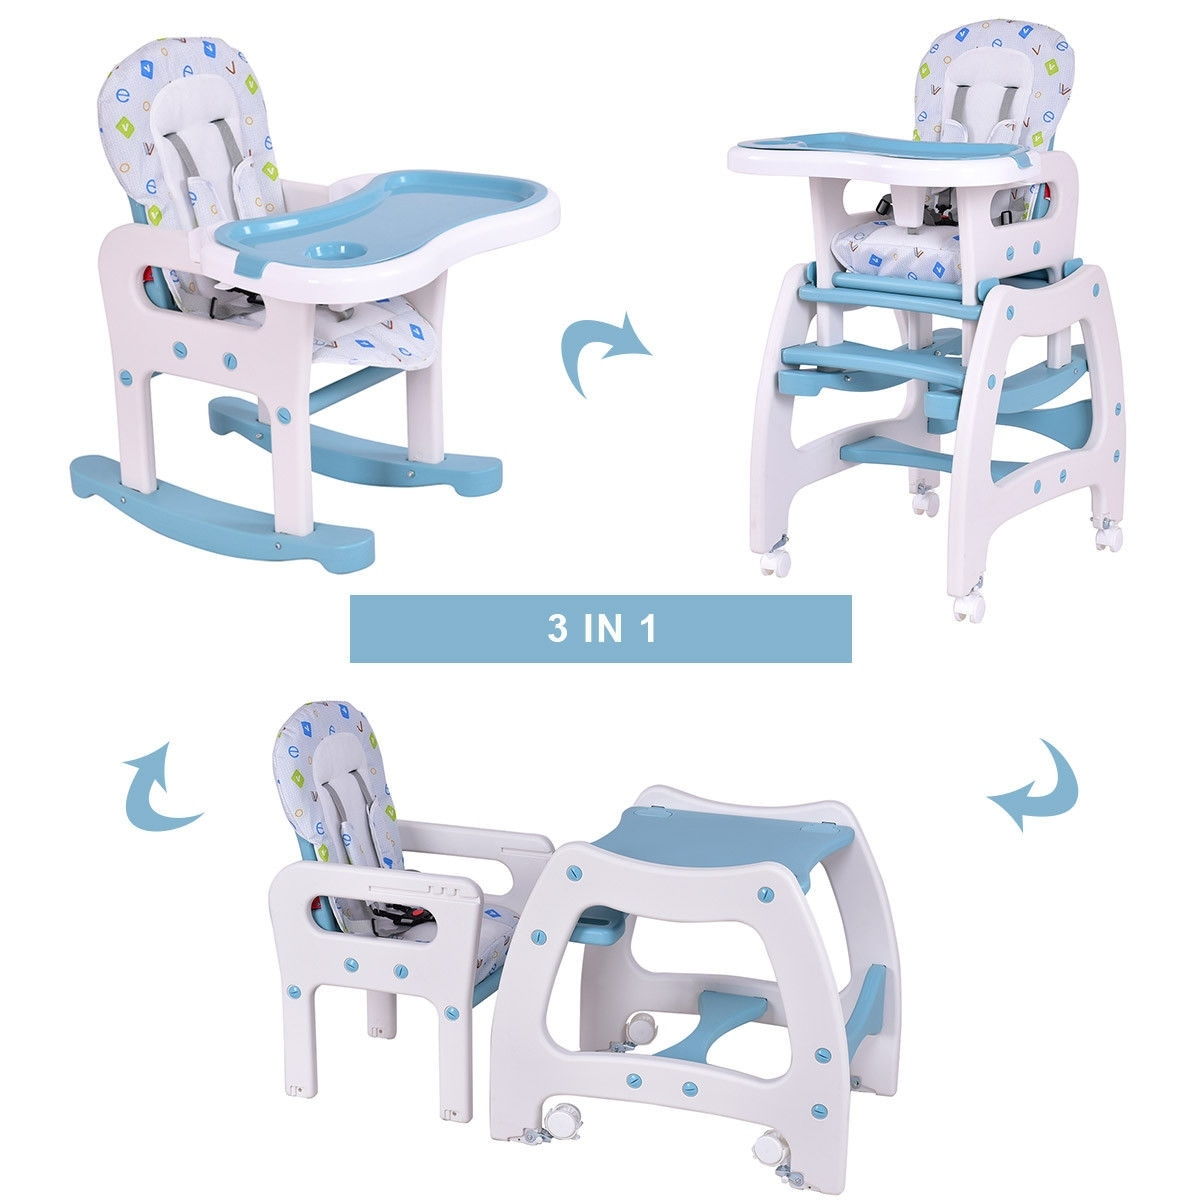 Shop Costway 3 In 1 Baby High Chair Convertible Play Table Seat